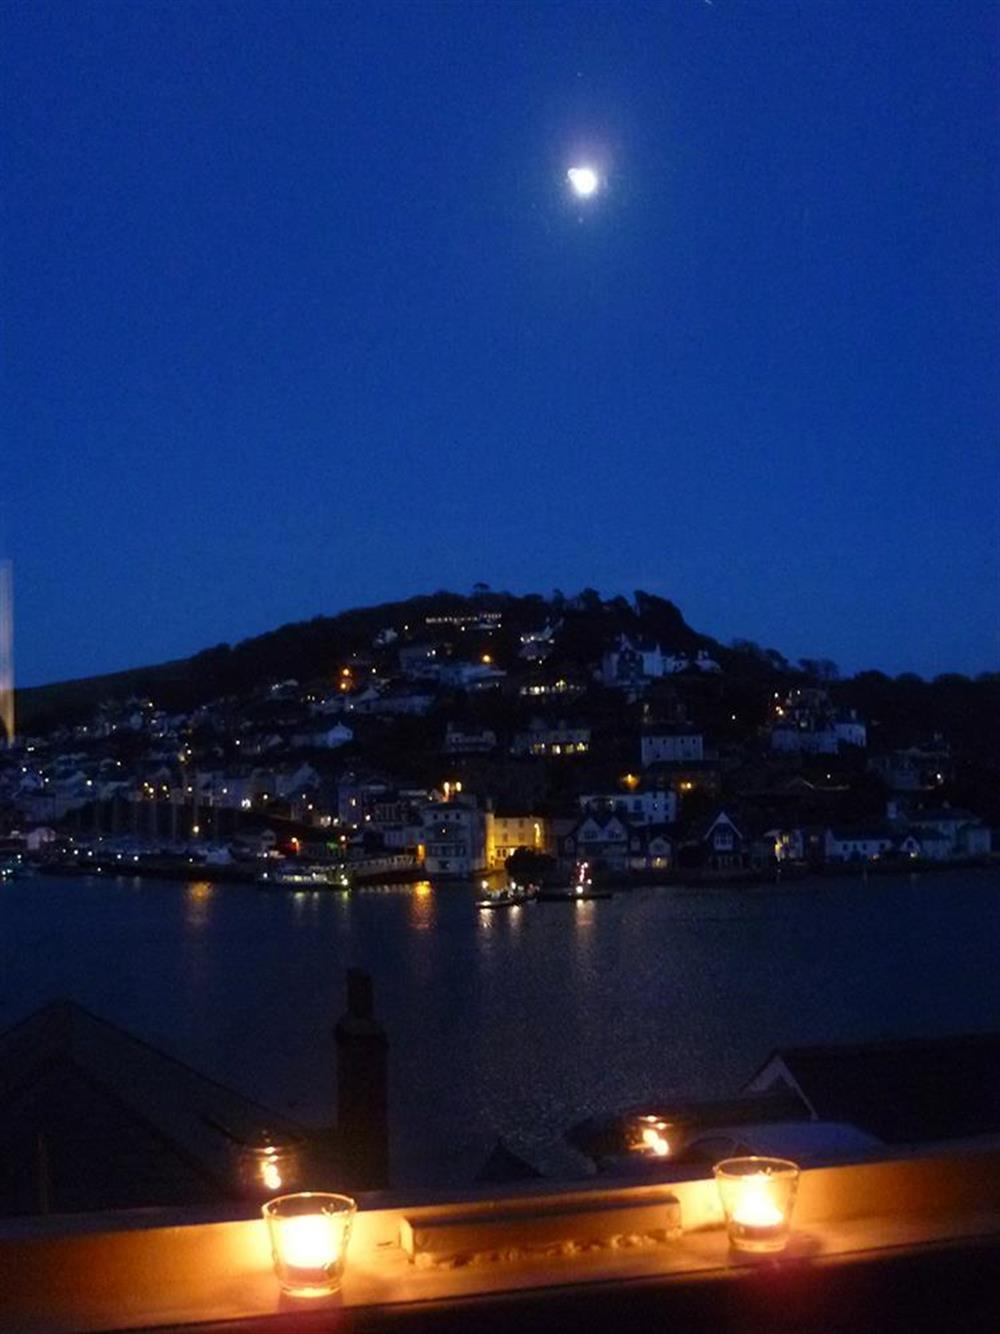 Looking across to Kinswear at night at 3 Dartview in South Town, Dartmouth